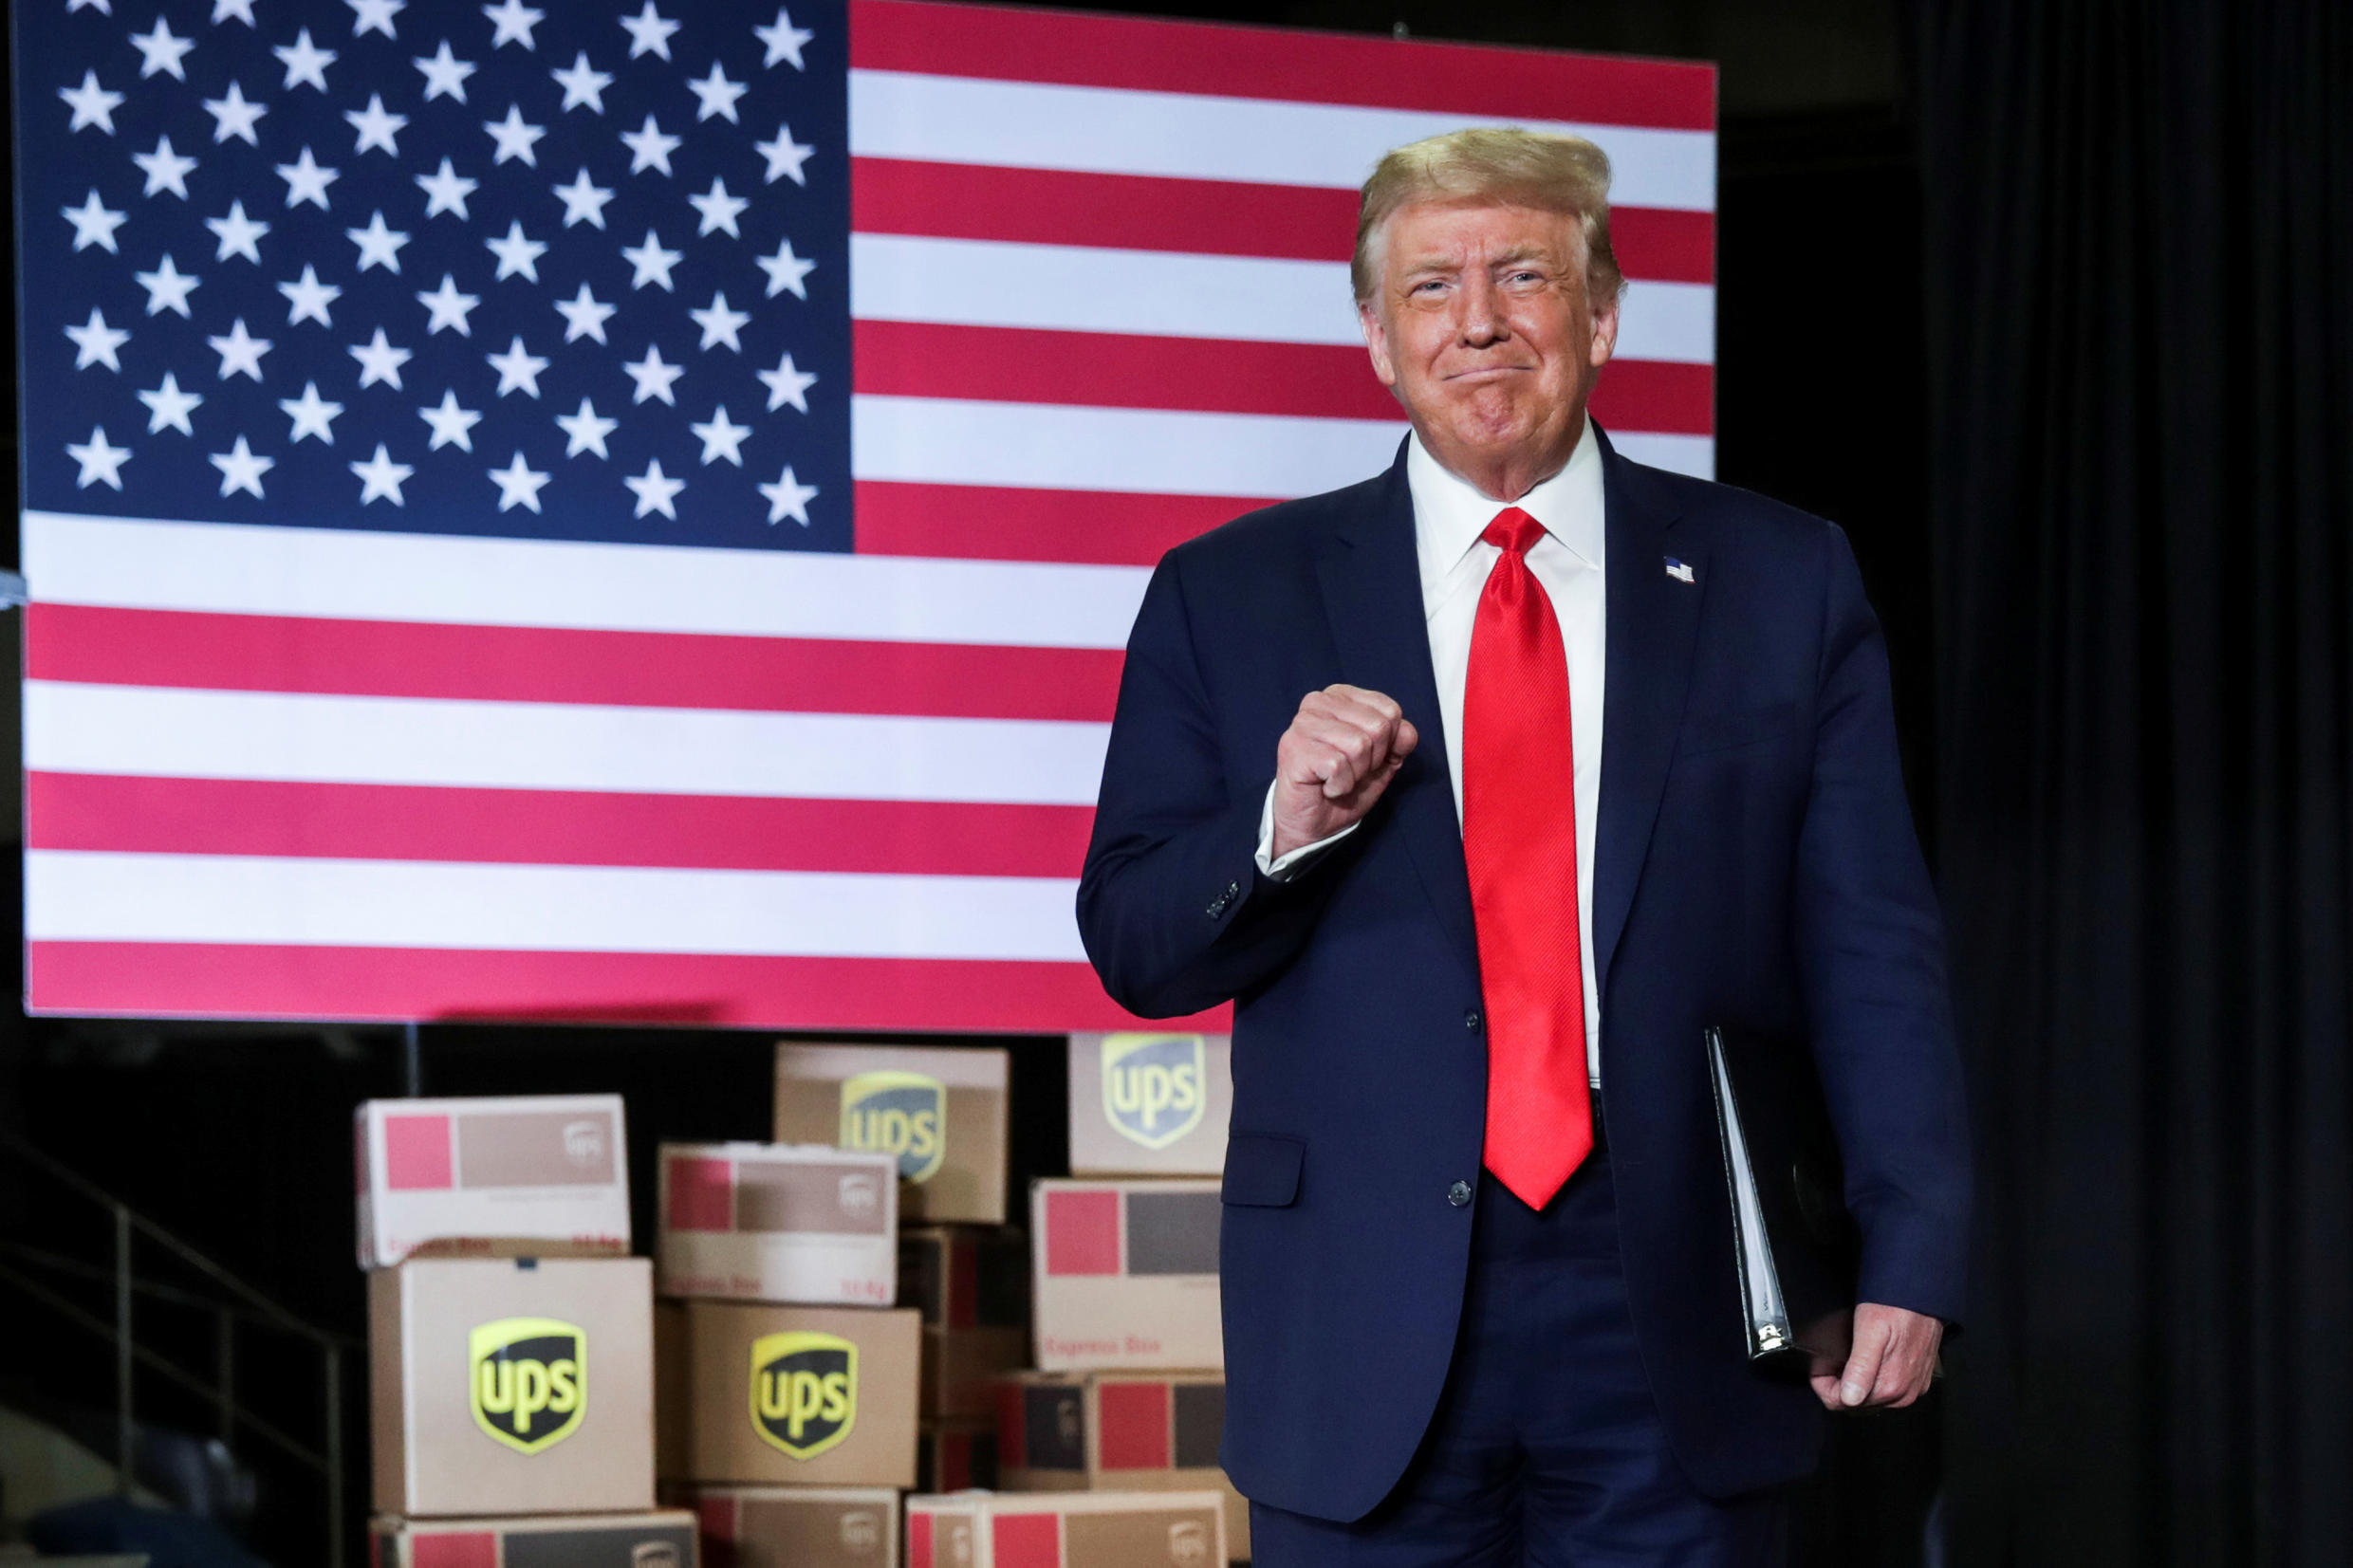 US President Donald Trump arrives to speak at an event at the UPS Airport Facility in Atlanta, Georgia, on July 15, 2020. REUTERS/Jonathan Ernst